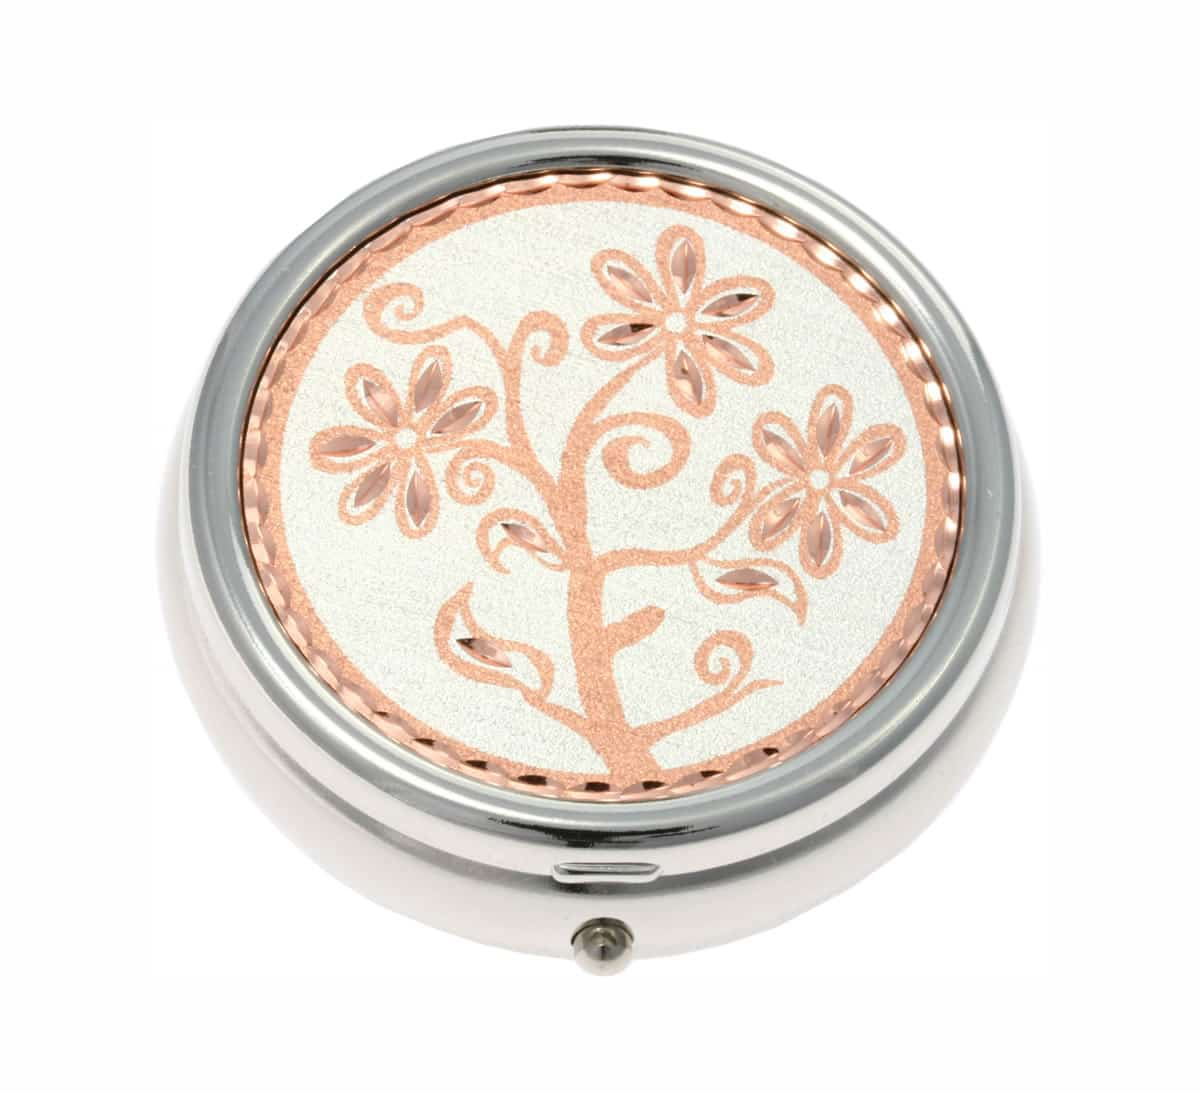 Buy Elegant Pill Boxes Handmade in Flower Design from Copper With Silver Background